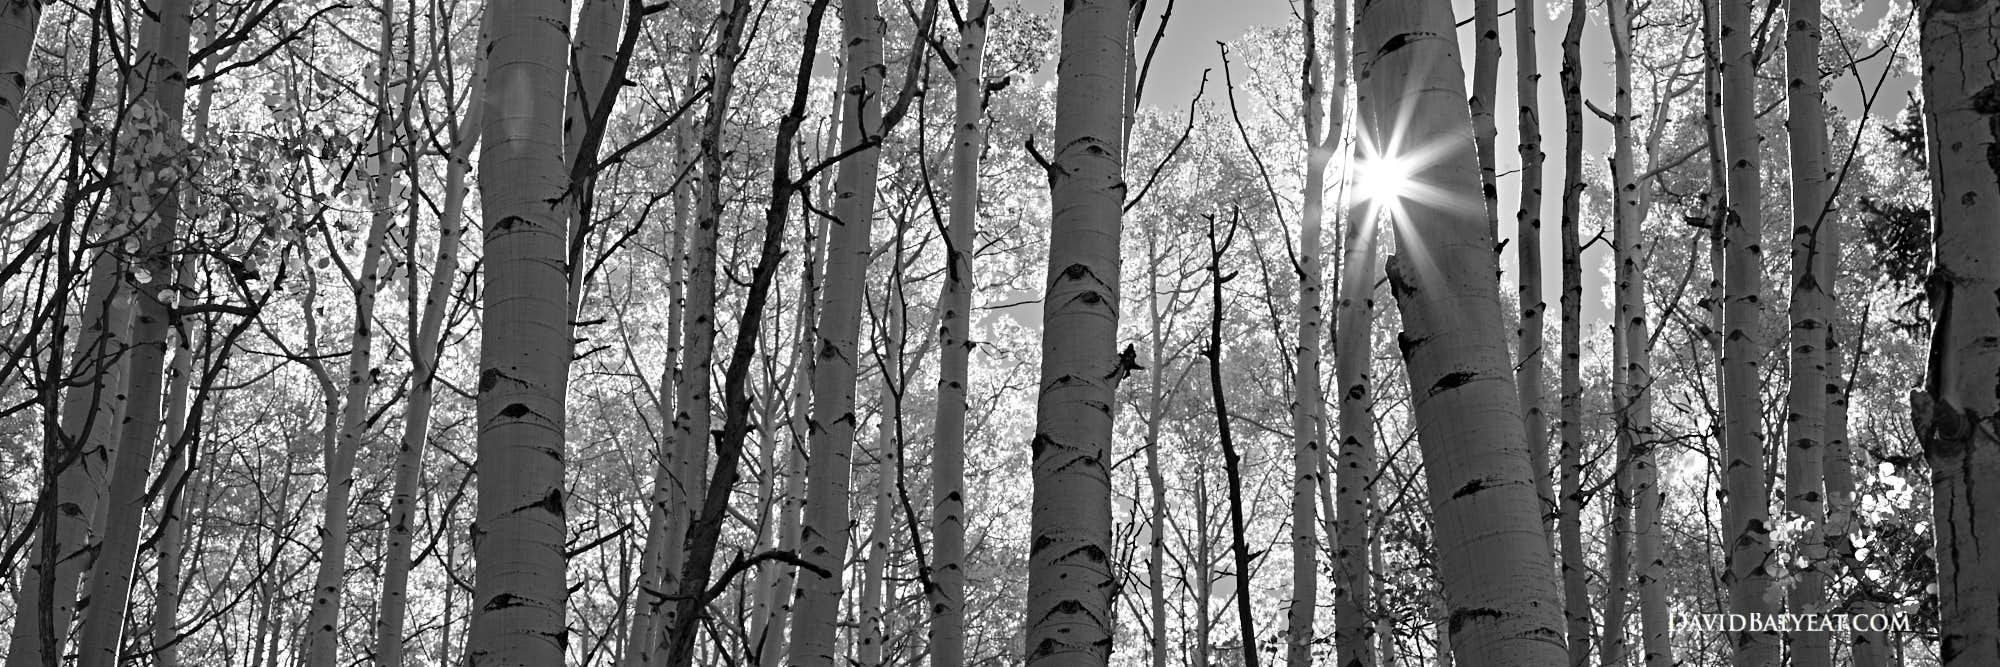 Aspen trees panoramic black and white sunburst high definition hd professional landscape photography